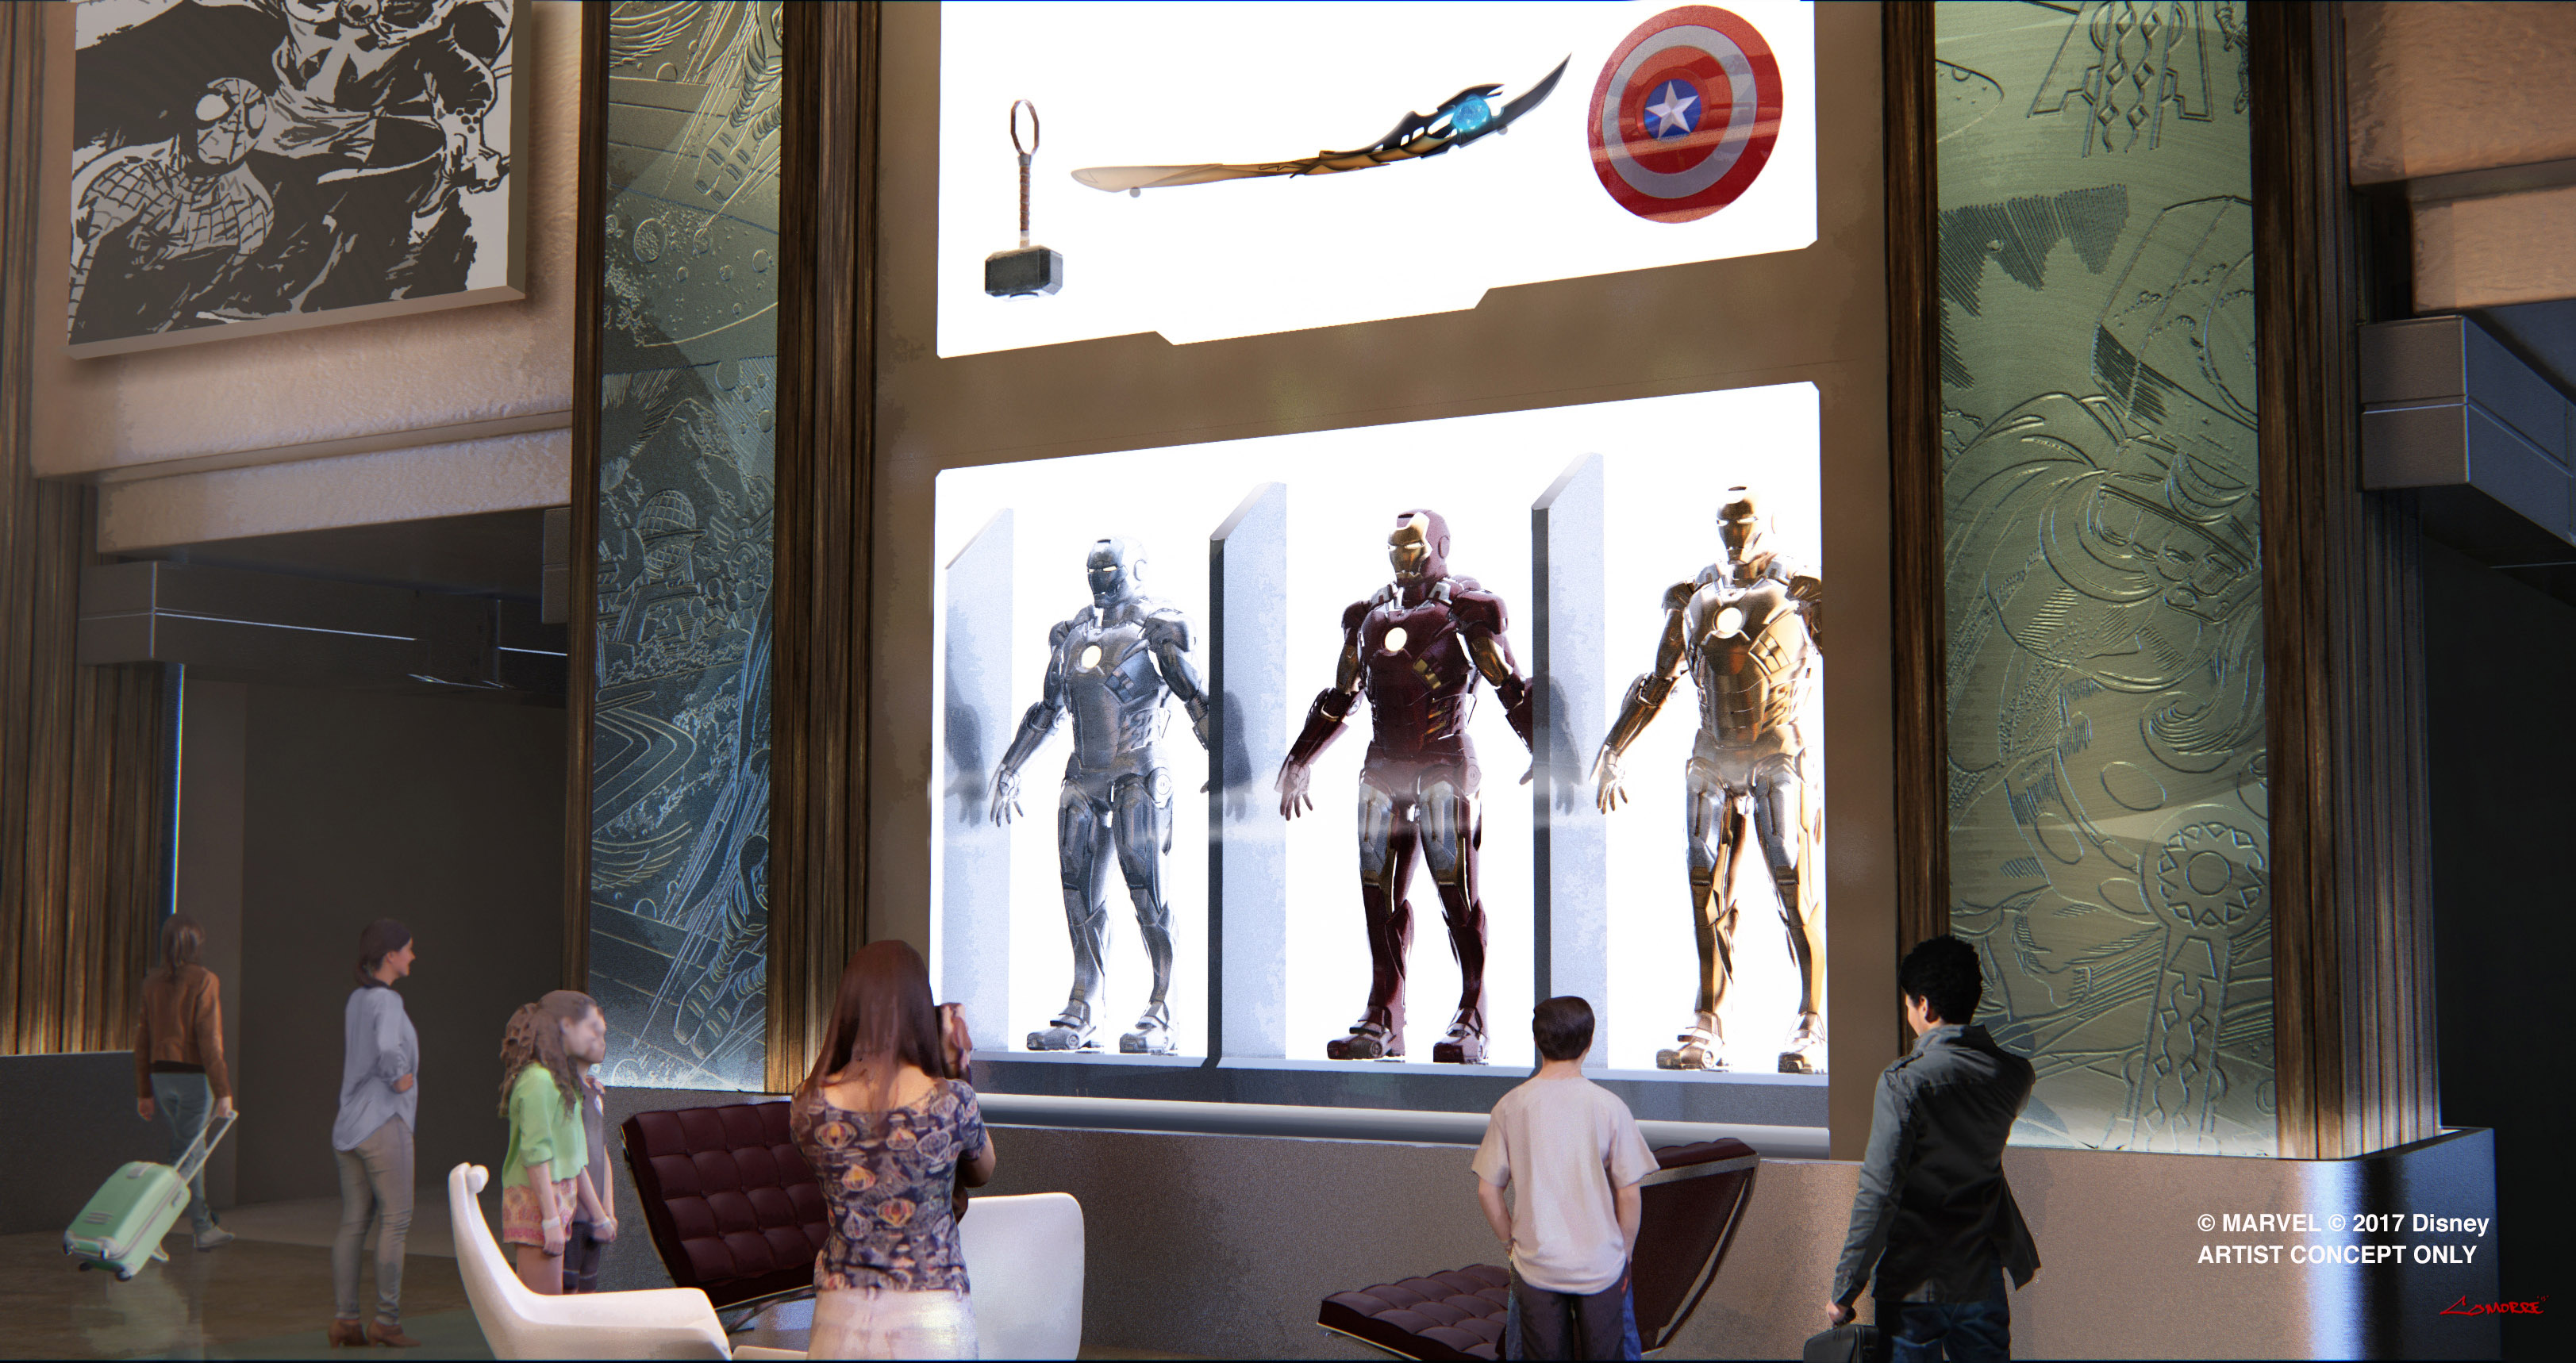 Disney's Hotel New York - The Art of Marvel (fermeture de 2019 à 2021) - Page 3 Image_DLP_Hotel-New-York-Lobby